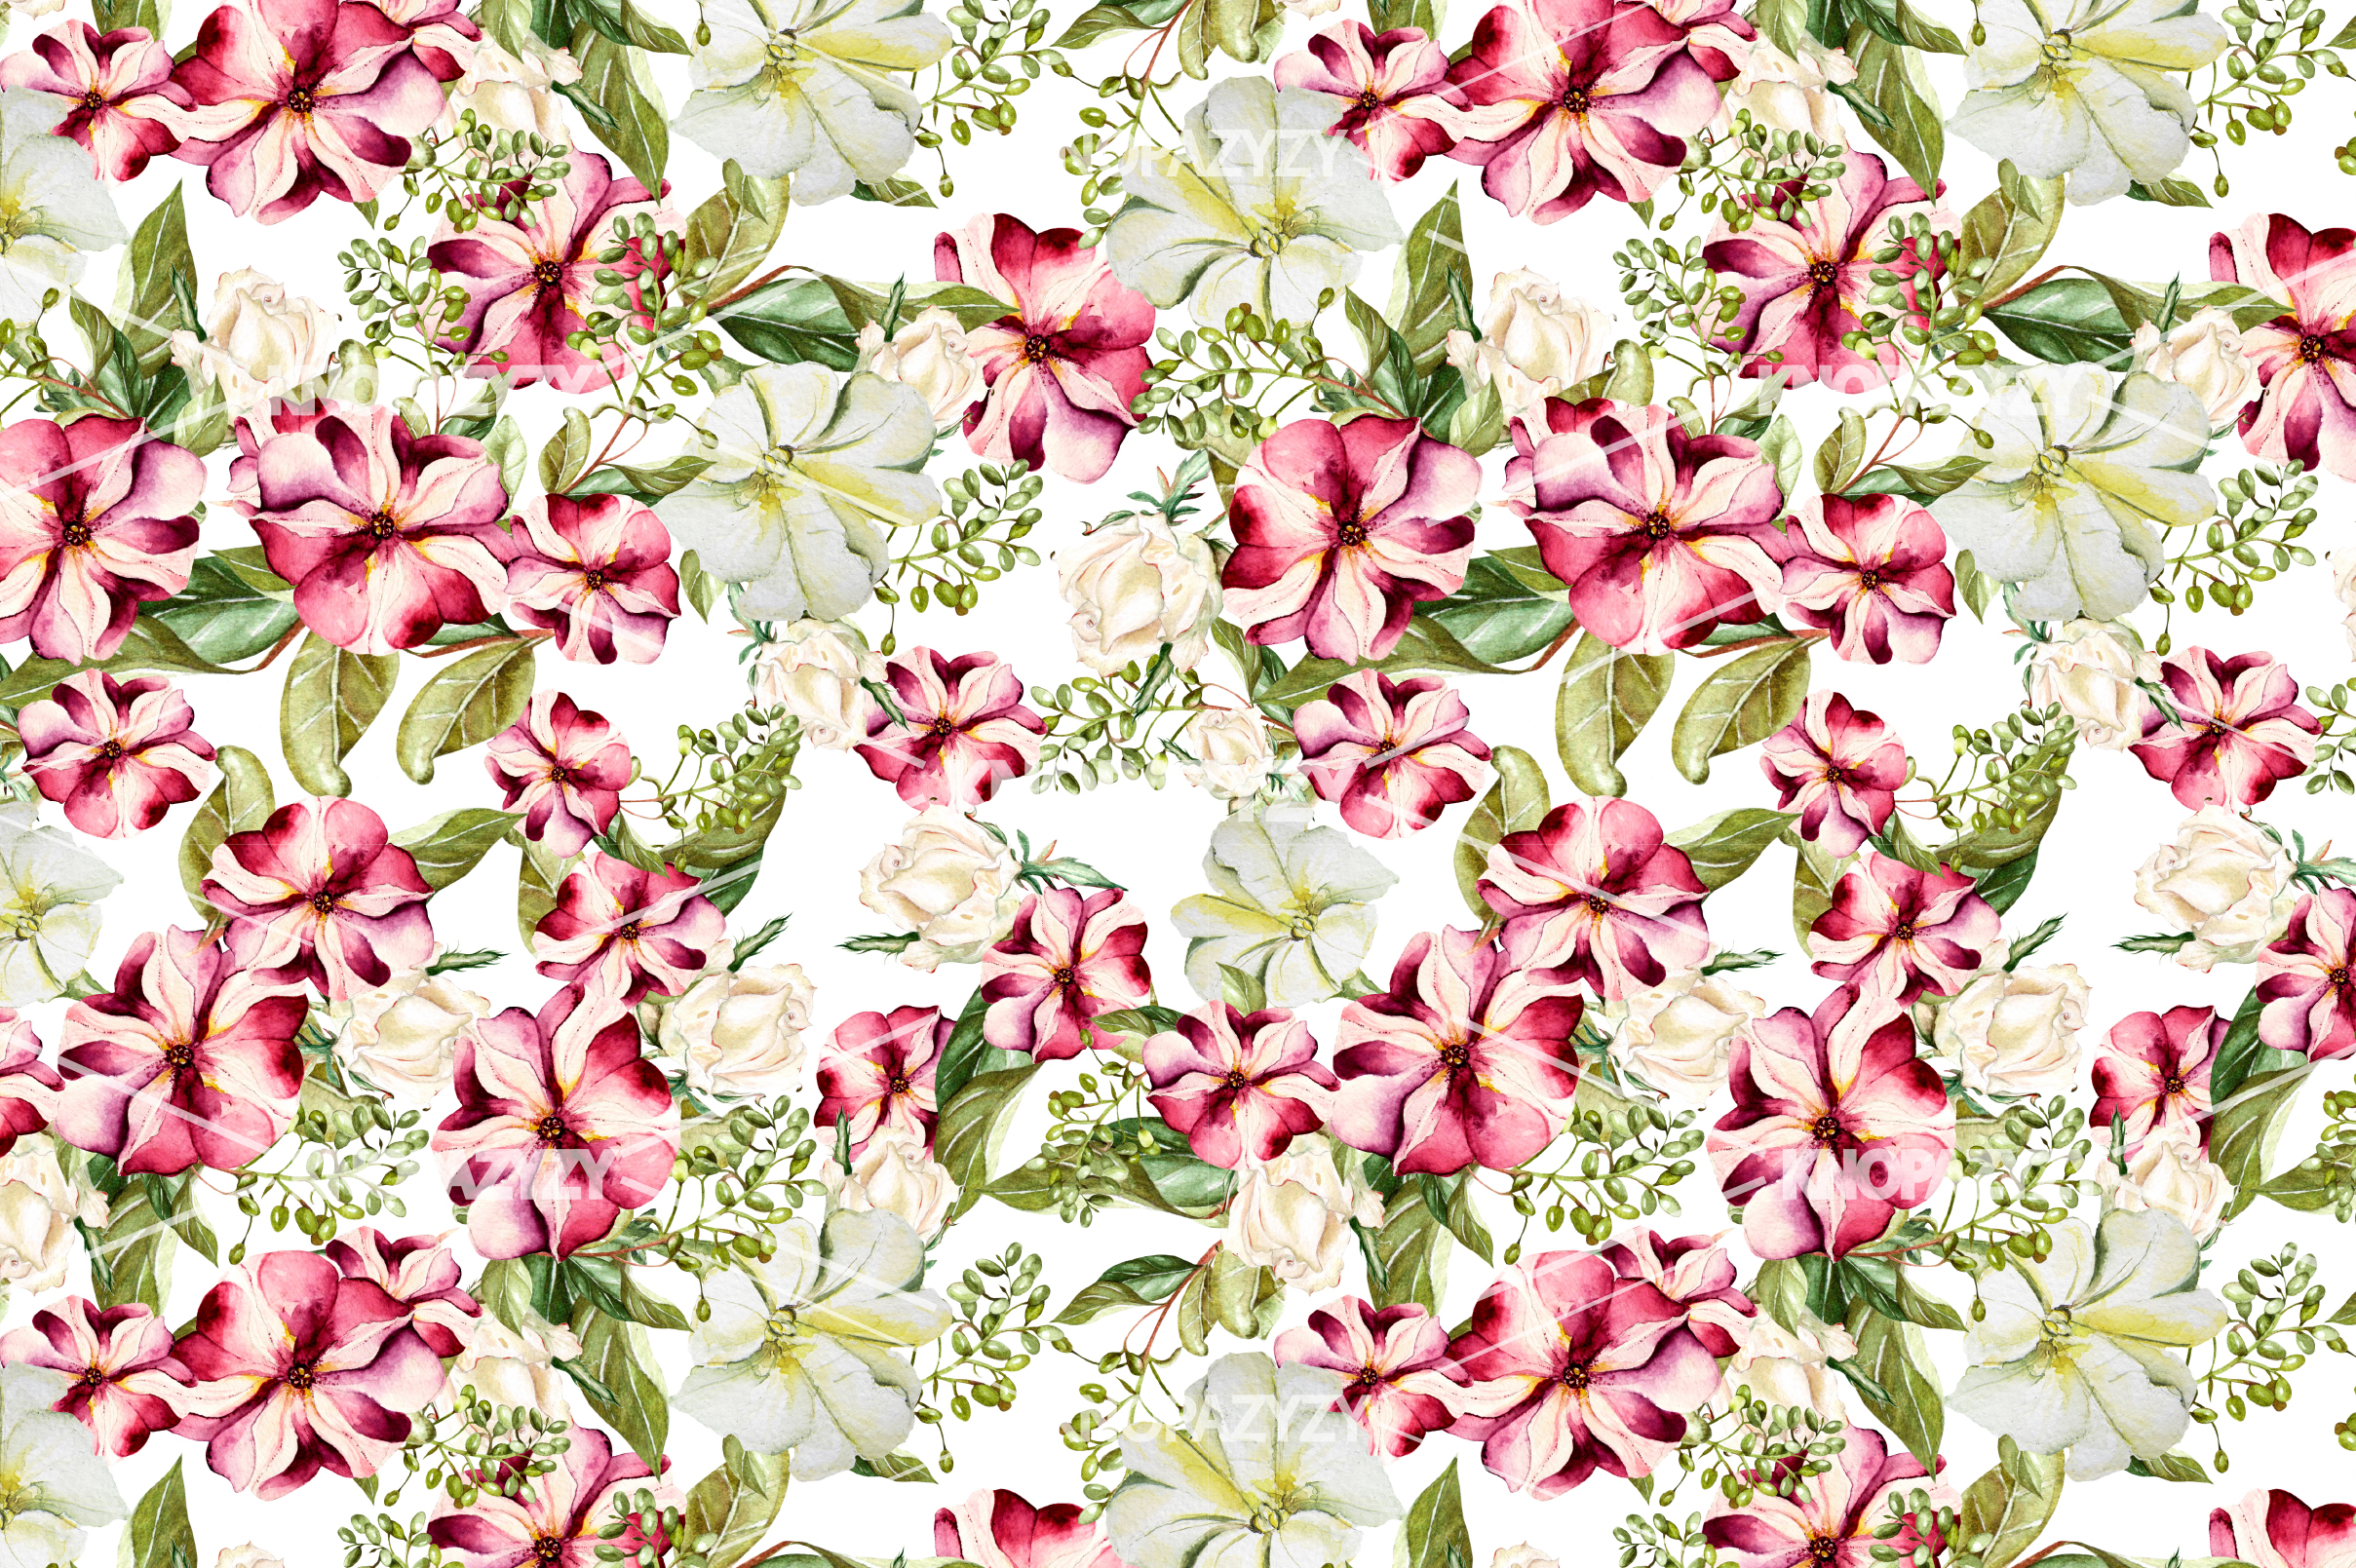 14 Hand drawn watercolor patterns example image 5